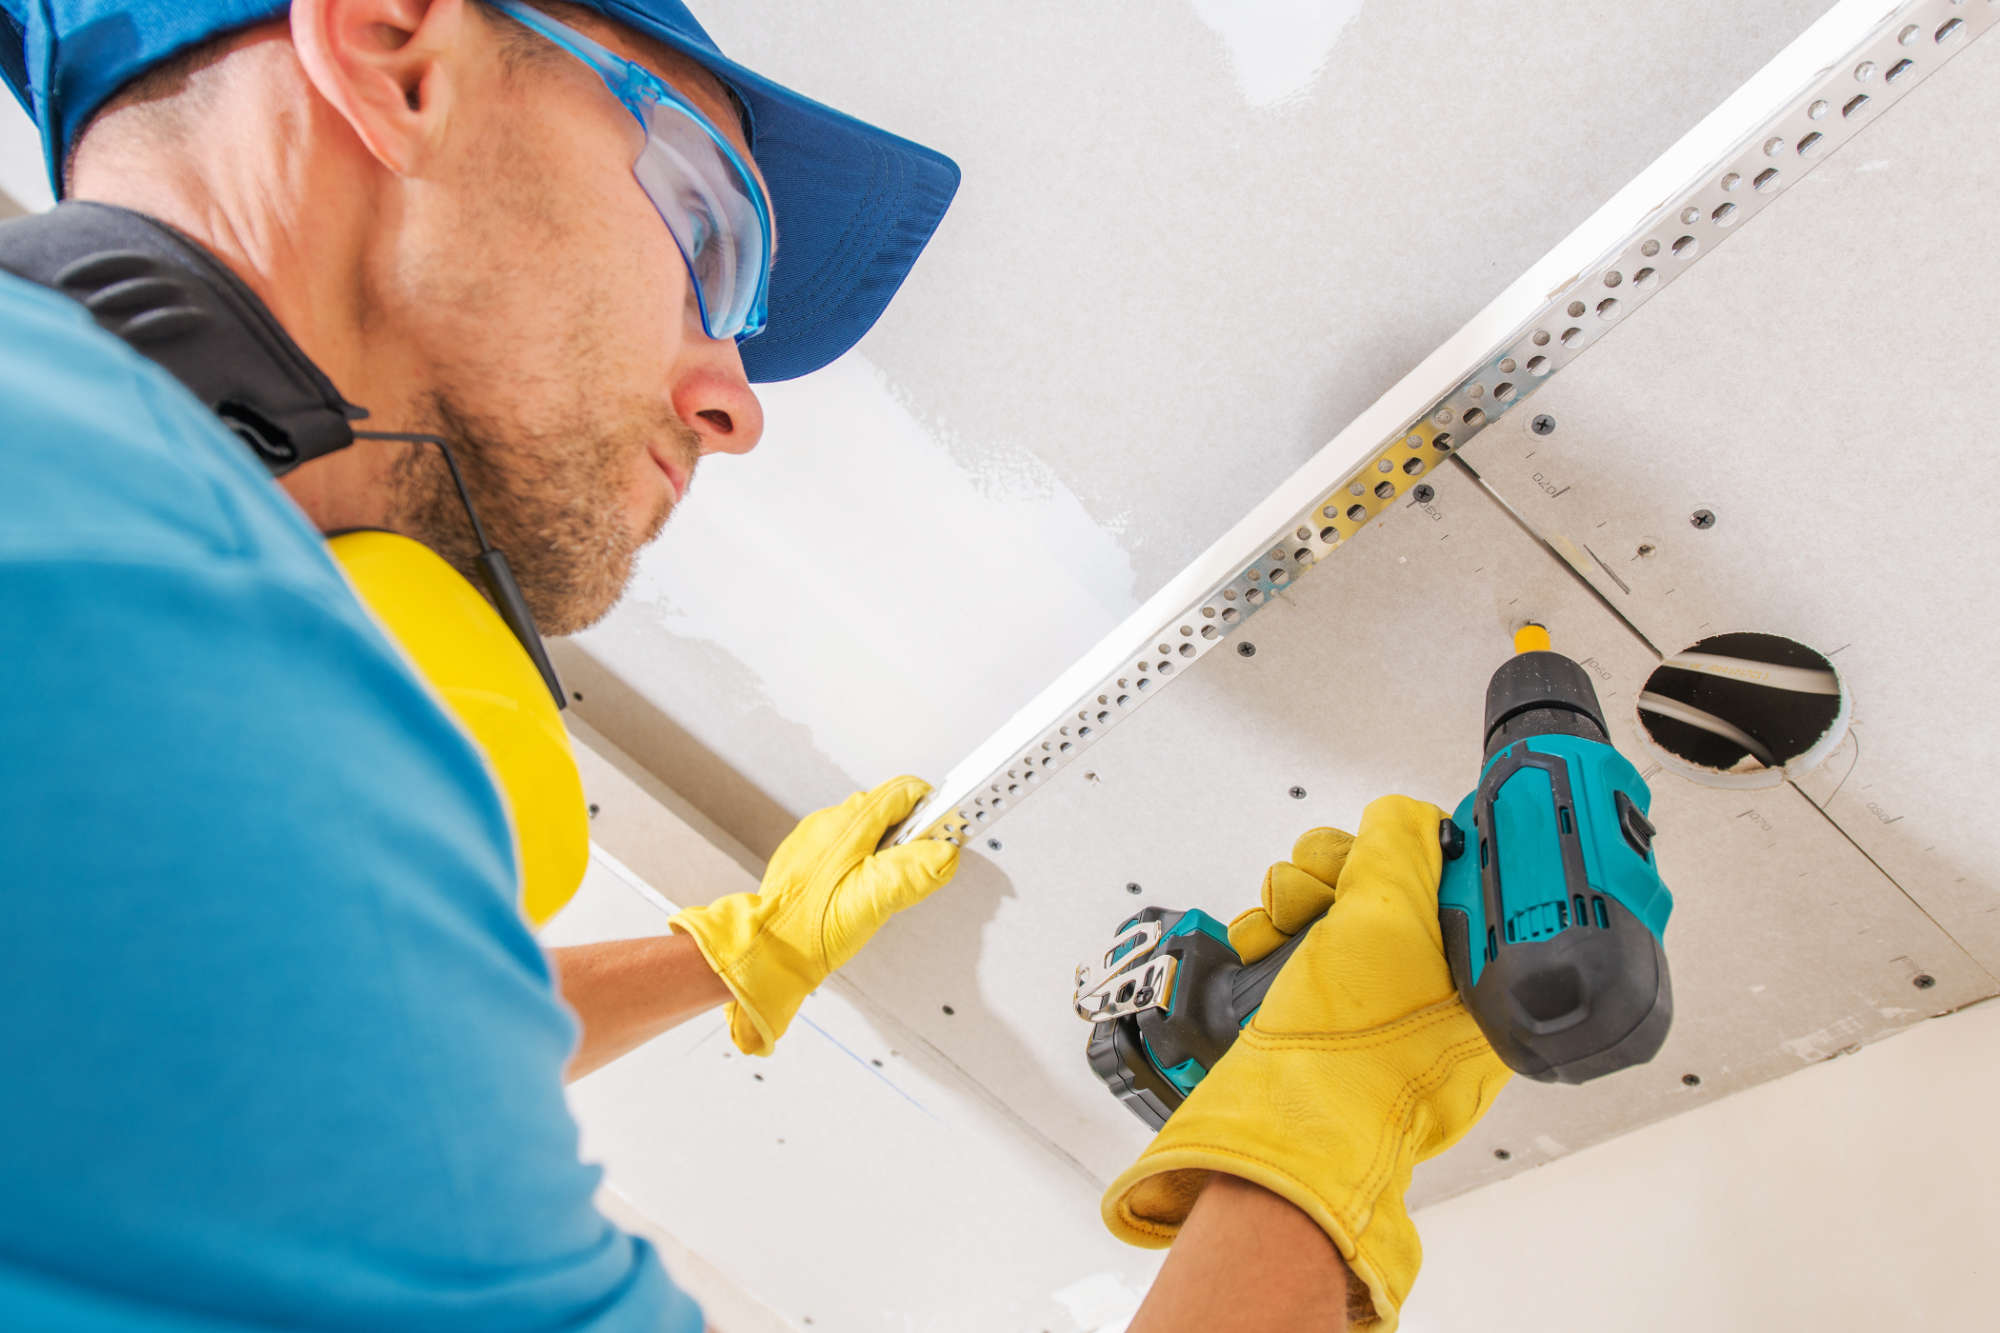 Drywall Ceiling Construction. Caucasian Contractor Worker with Power Tool Building Drywall Elements.